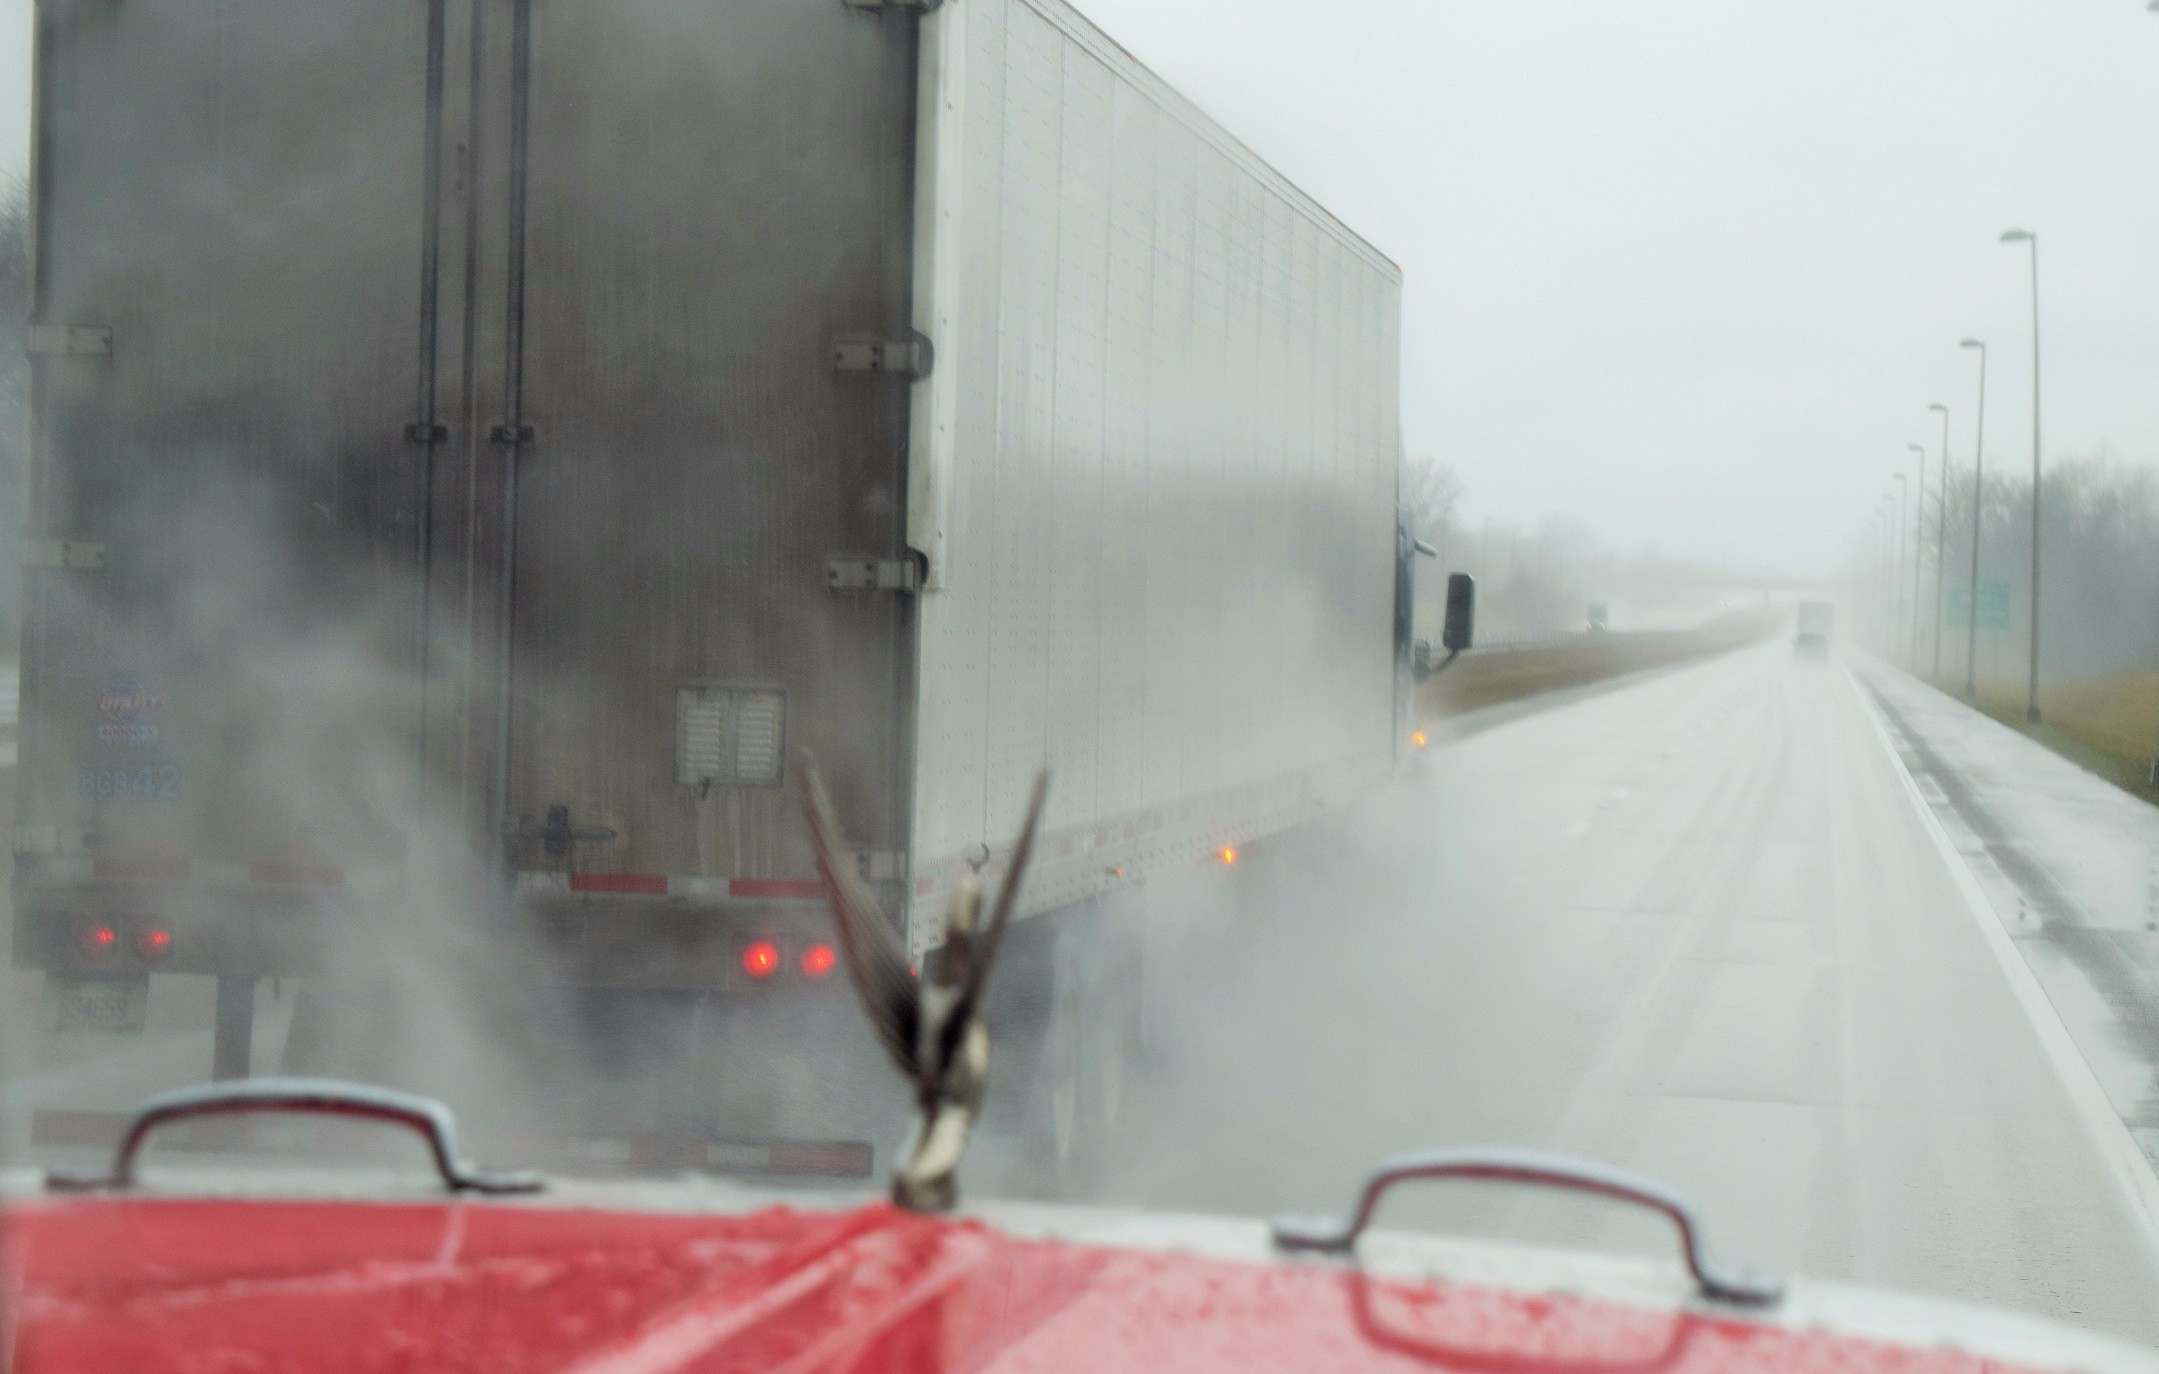 The latest on speed limiters: Senate wants DOT to act now